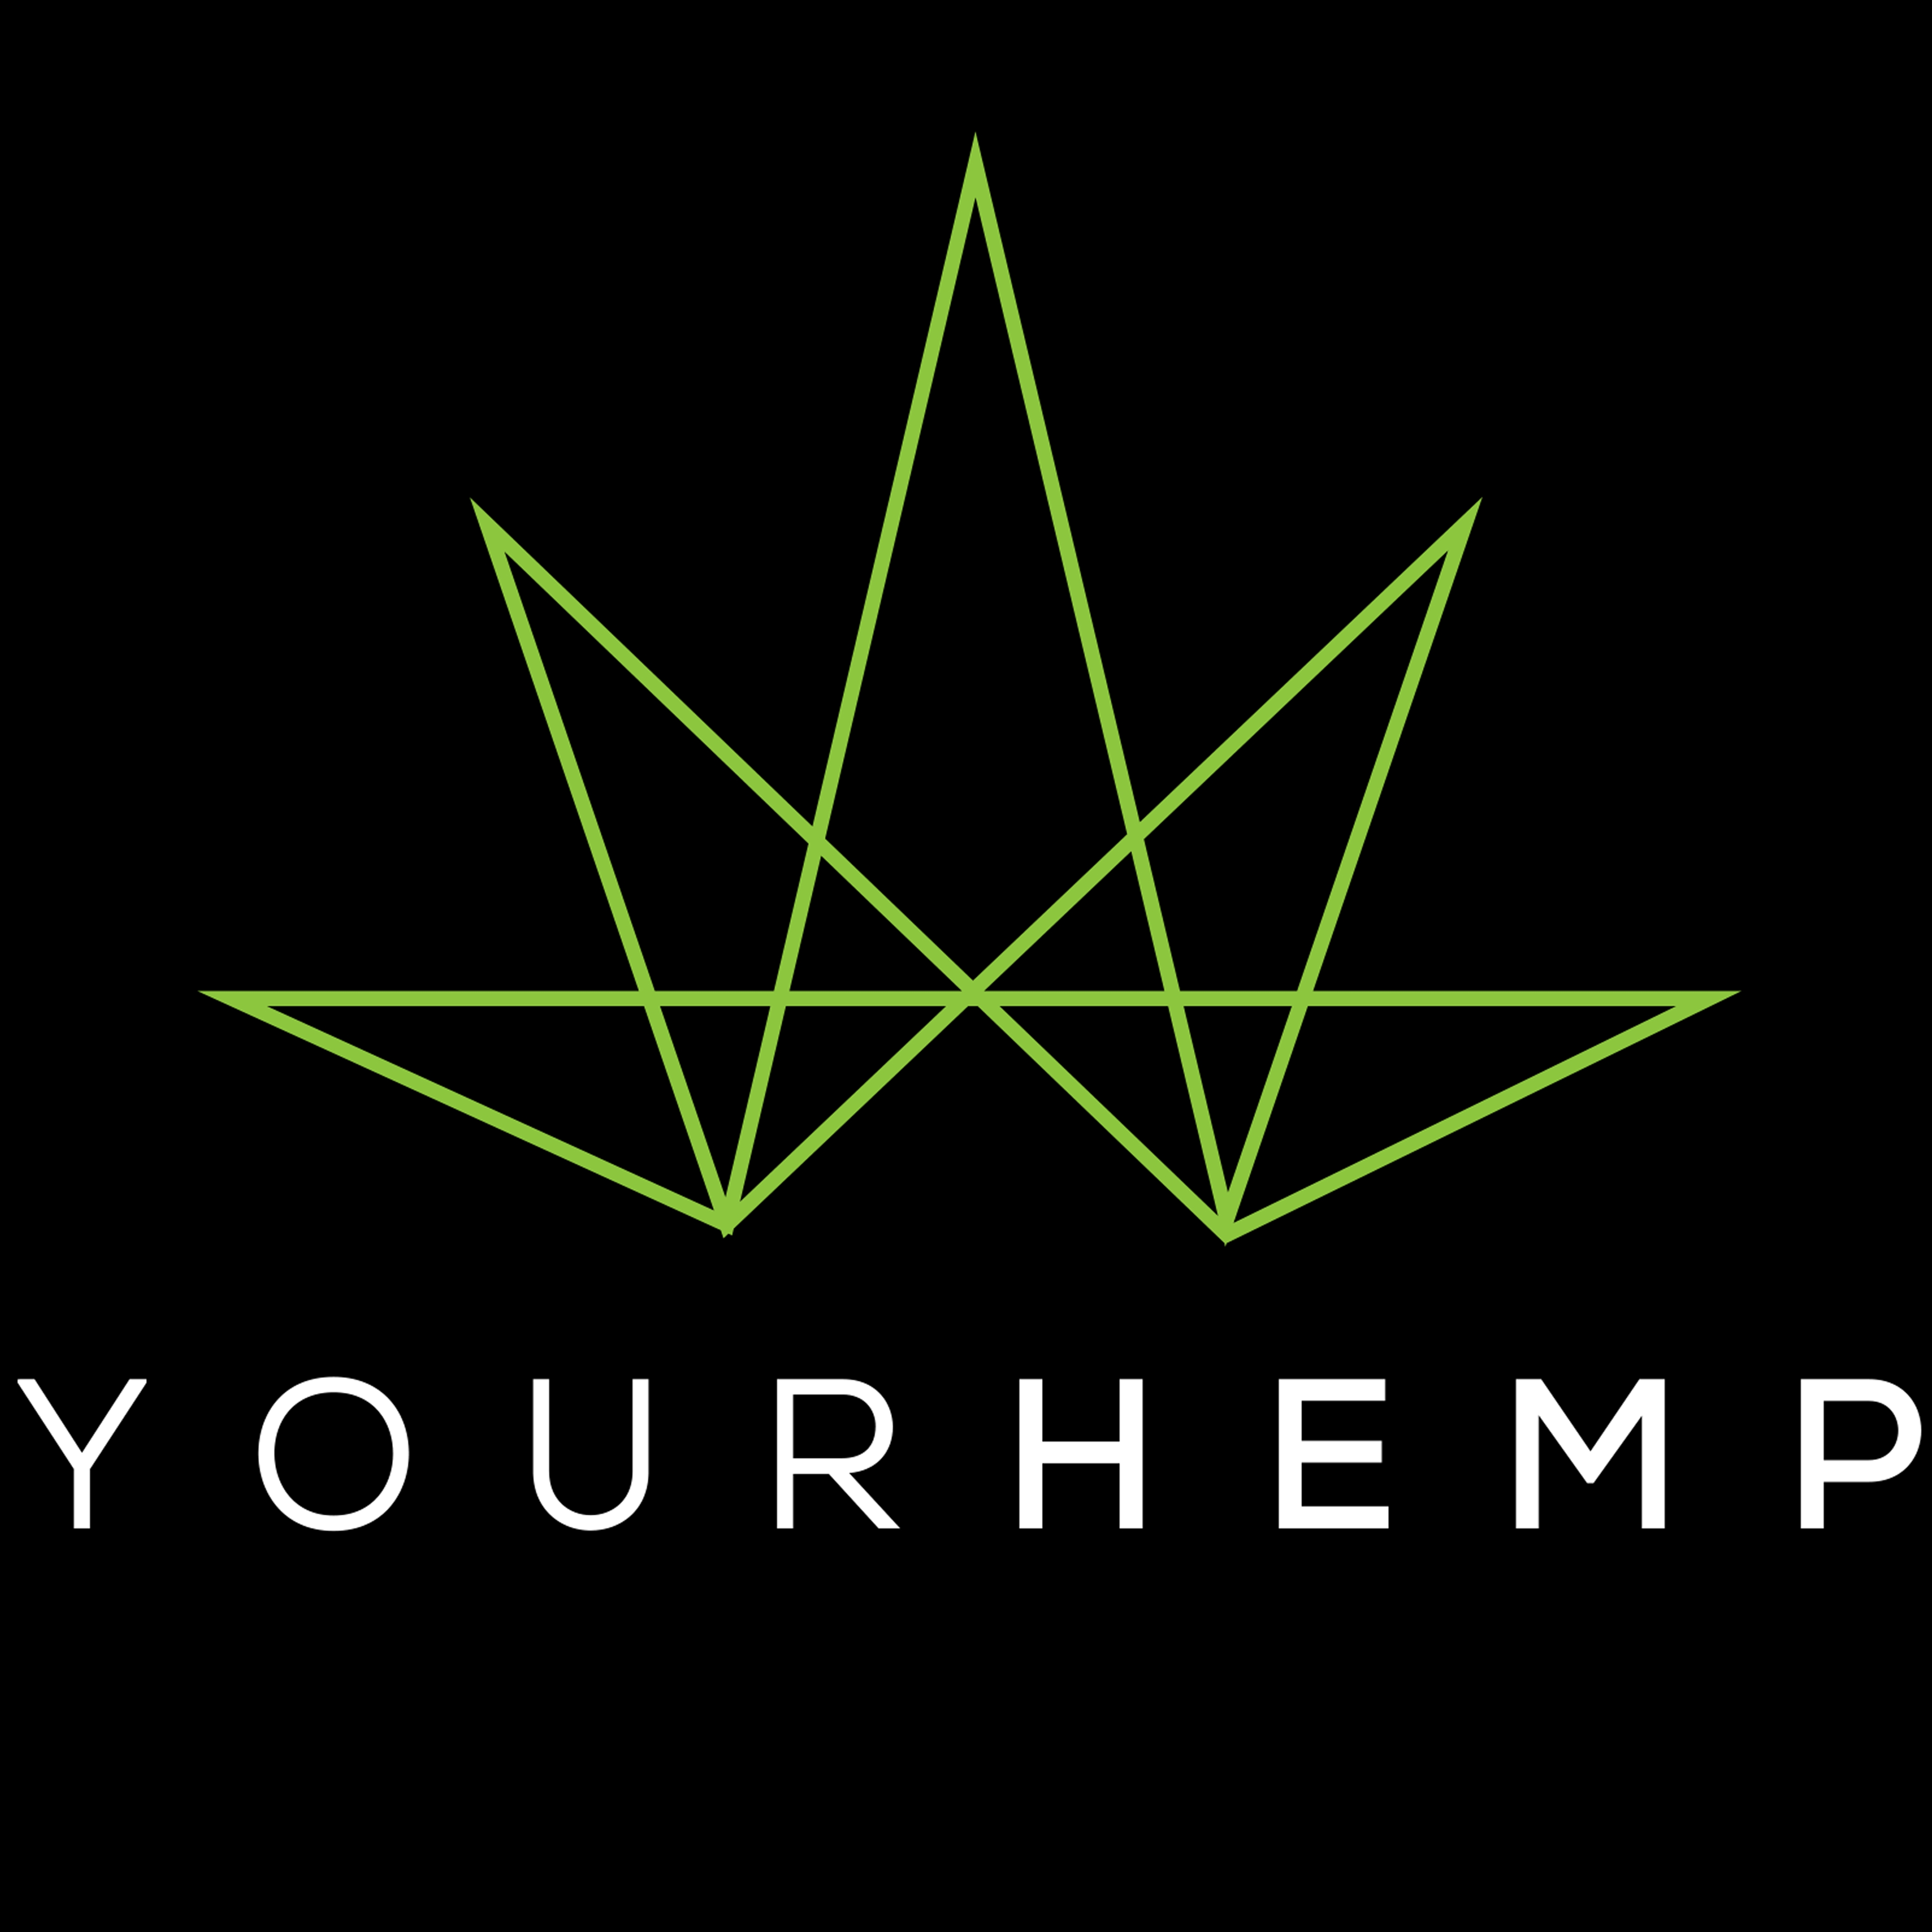 Your Hemp logo